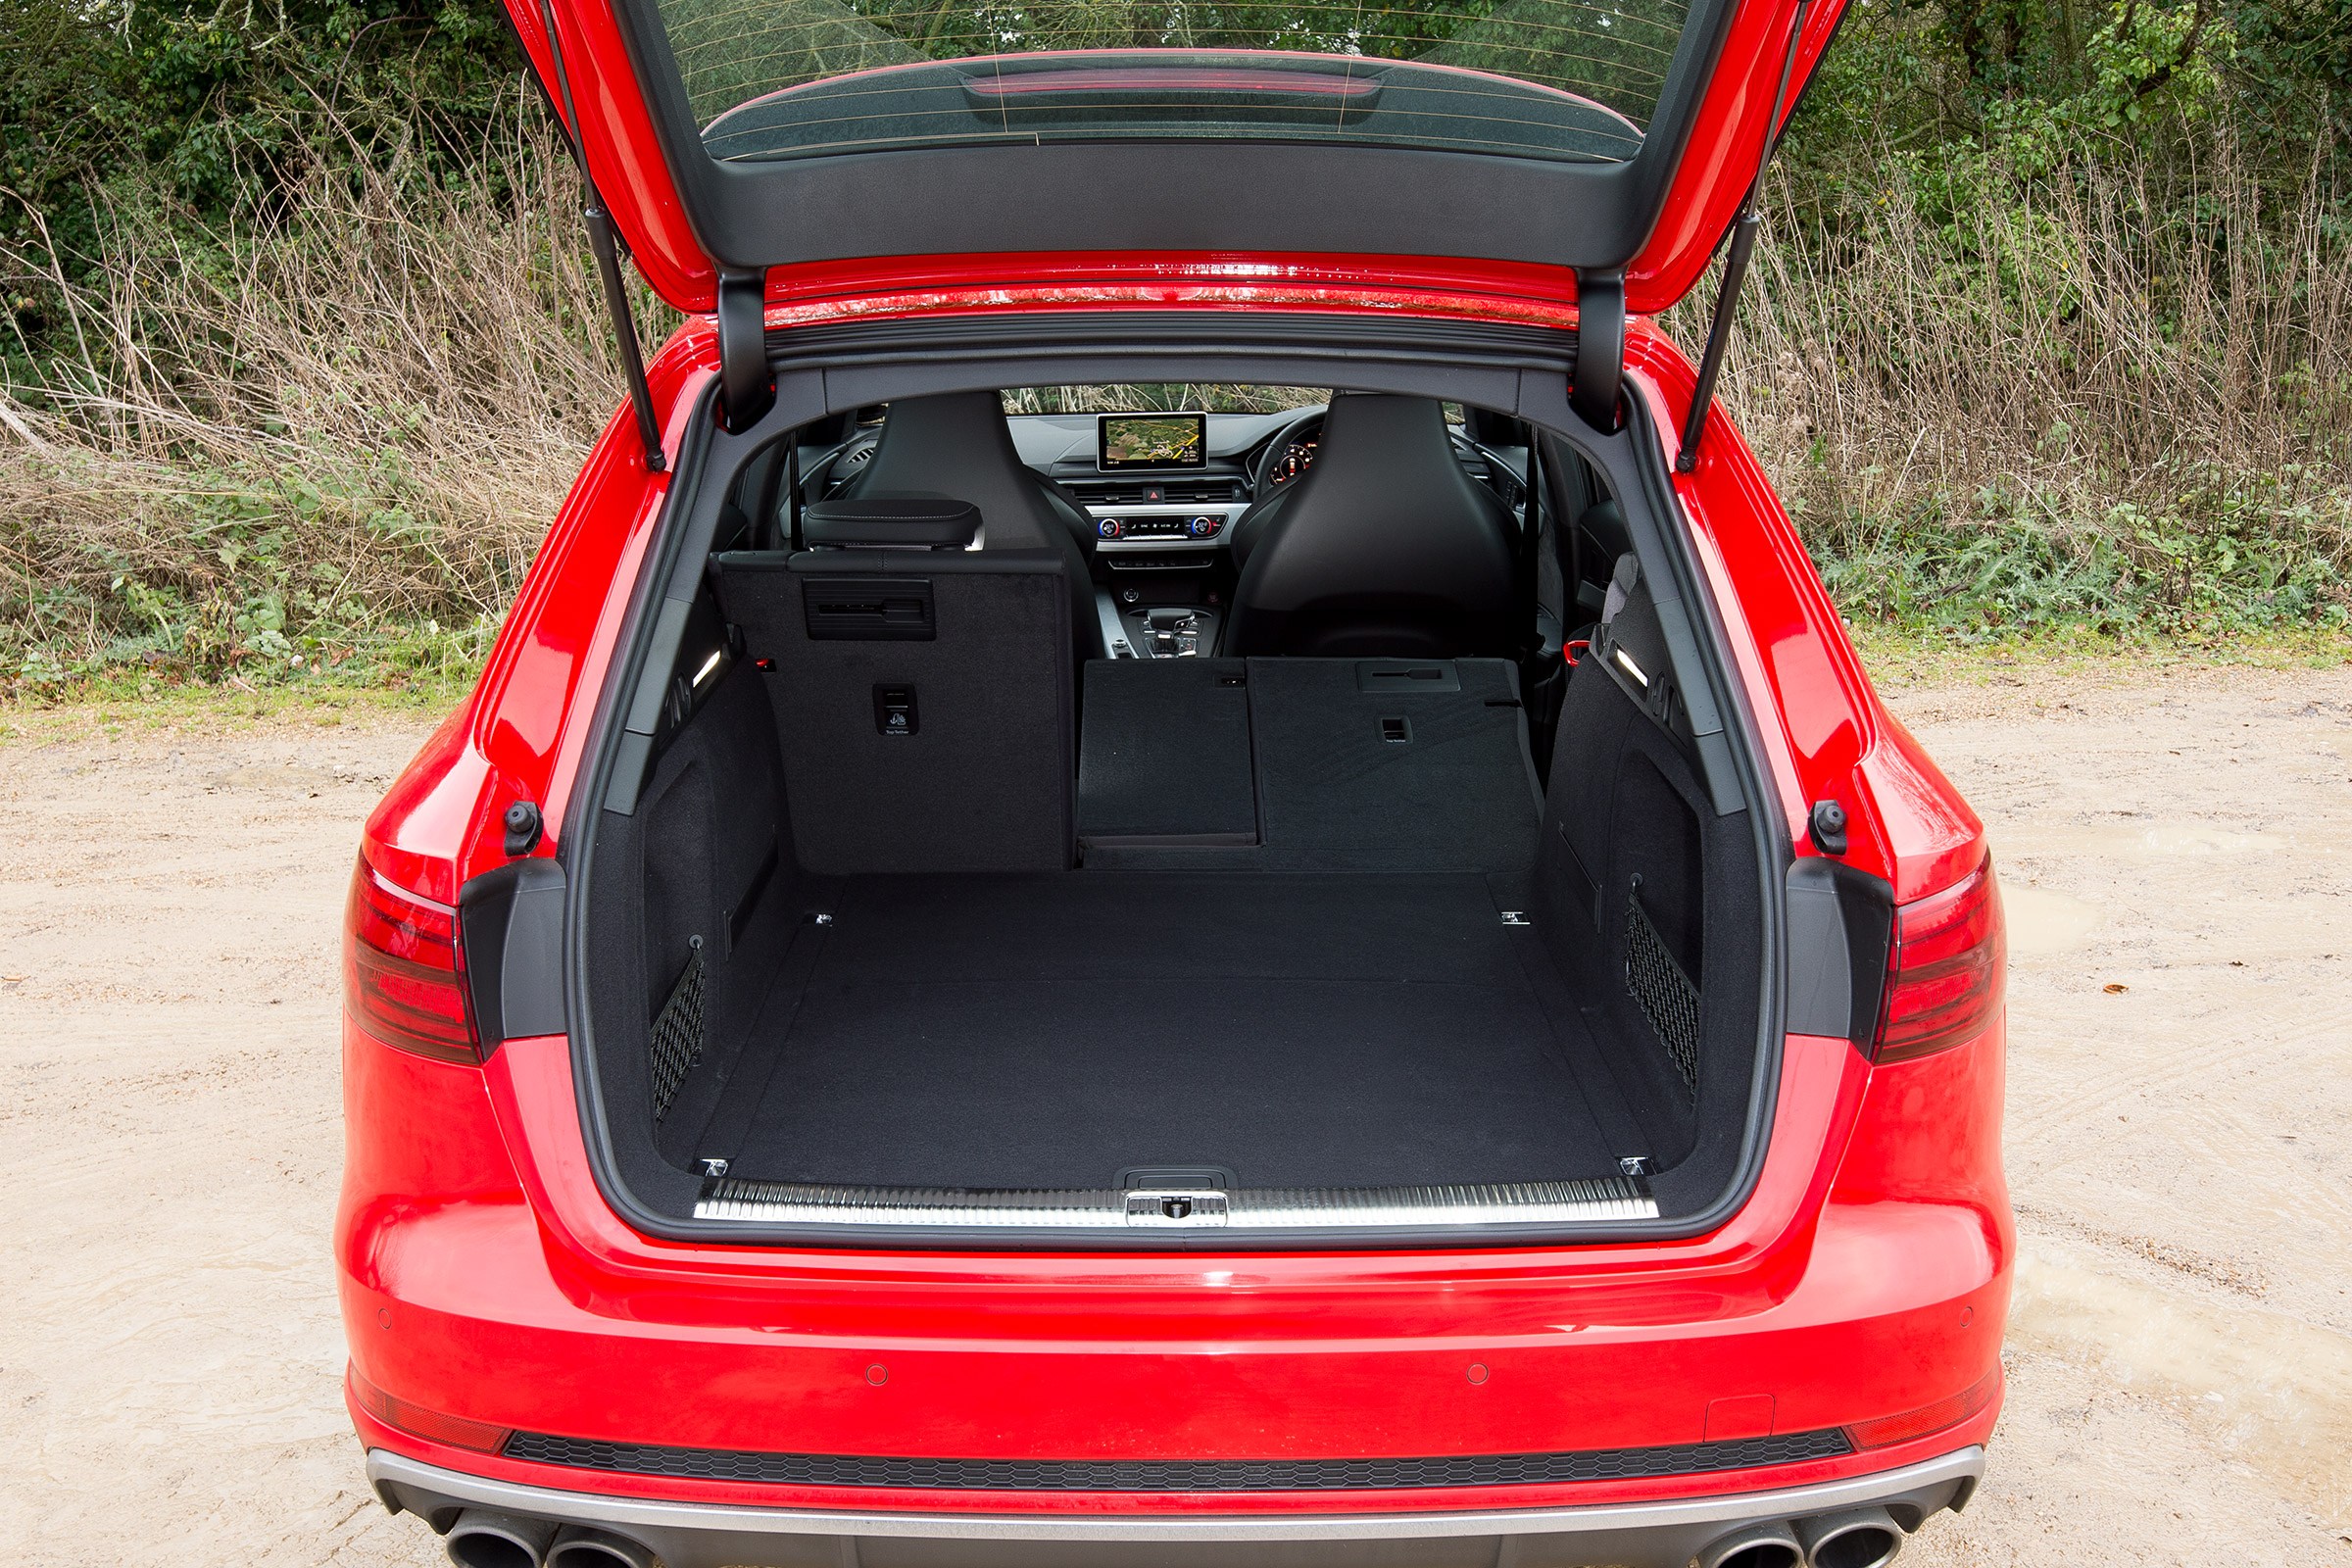 2017 Audi S4 Avant Interior View Rear Cargo (View 5 of 17)